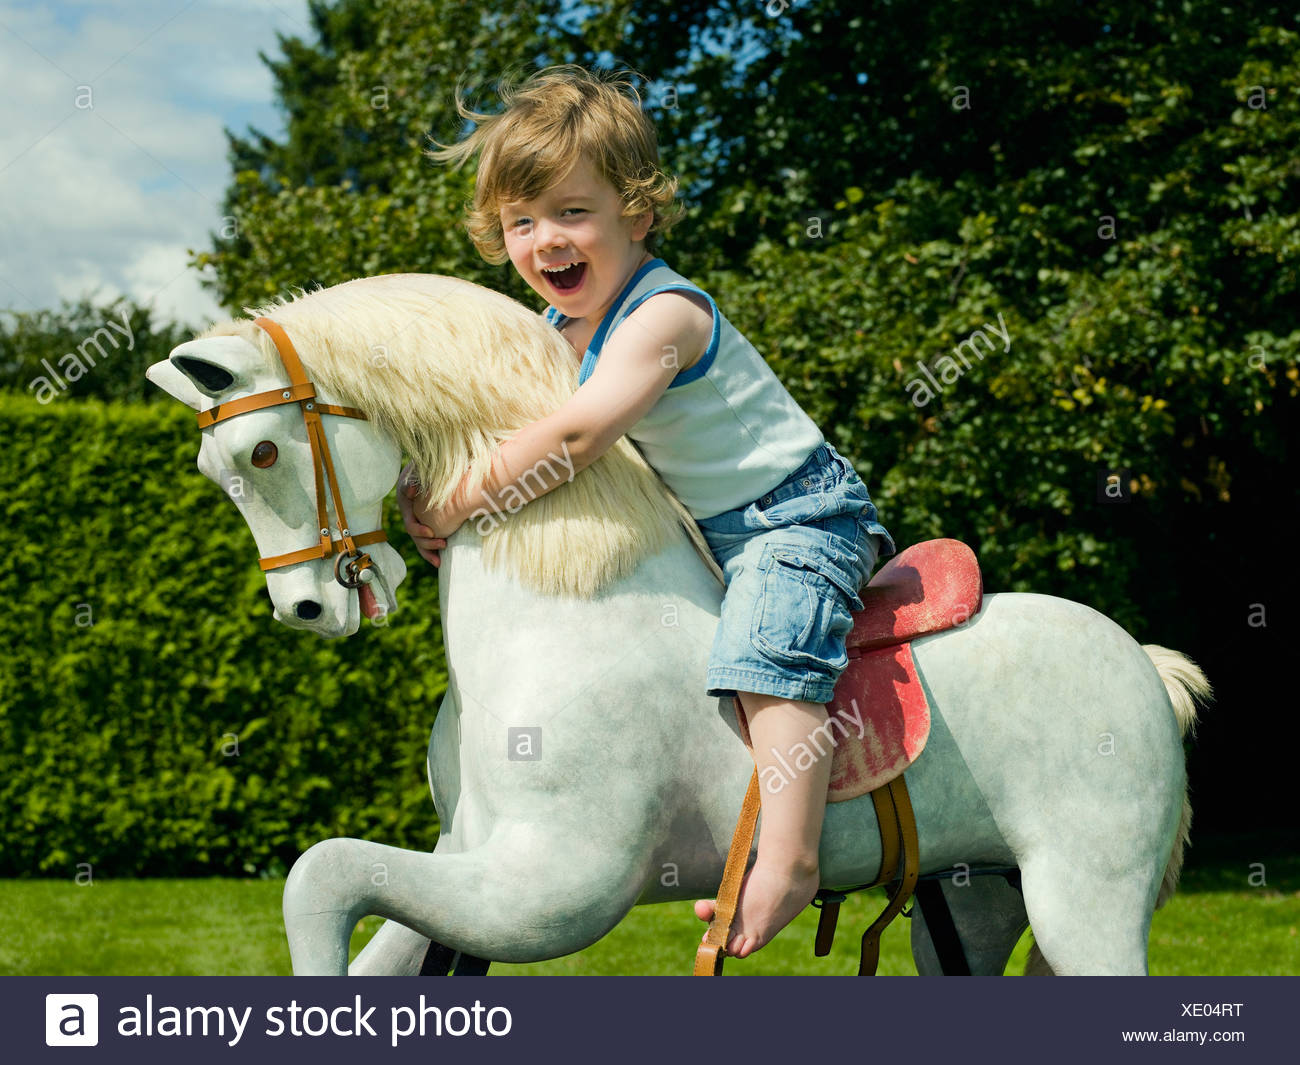 Young Boy Riding Horse High Resolution Stock Photography And Images Alamy